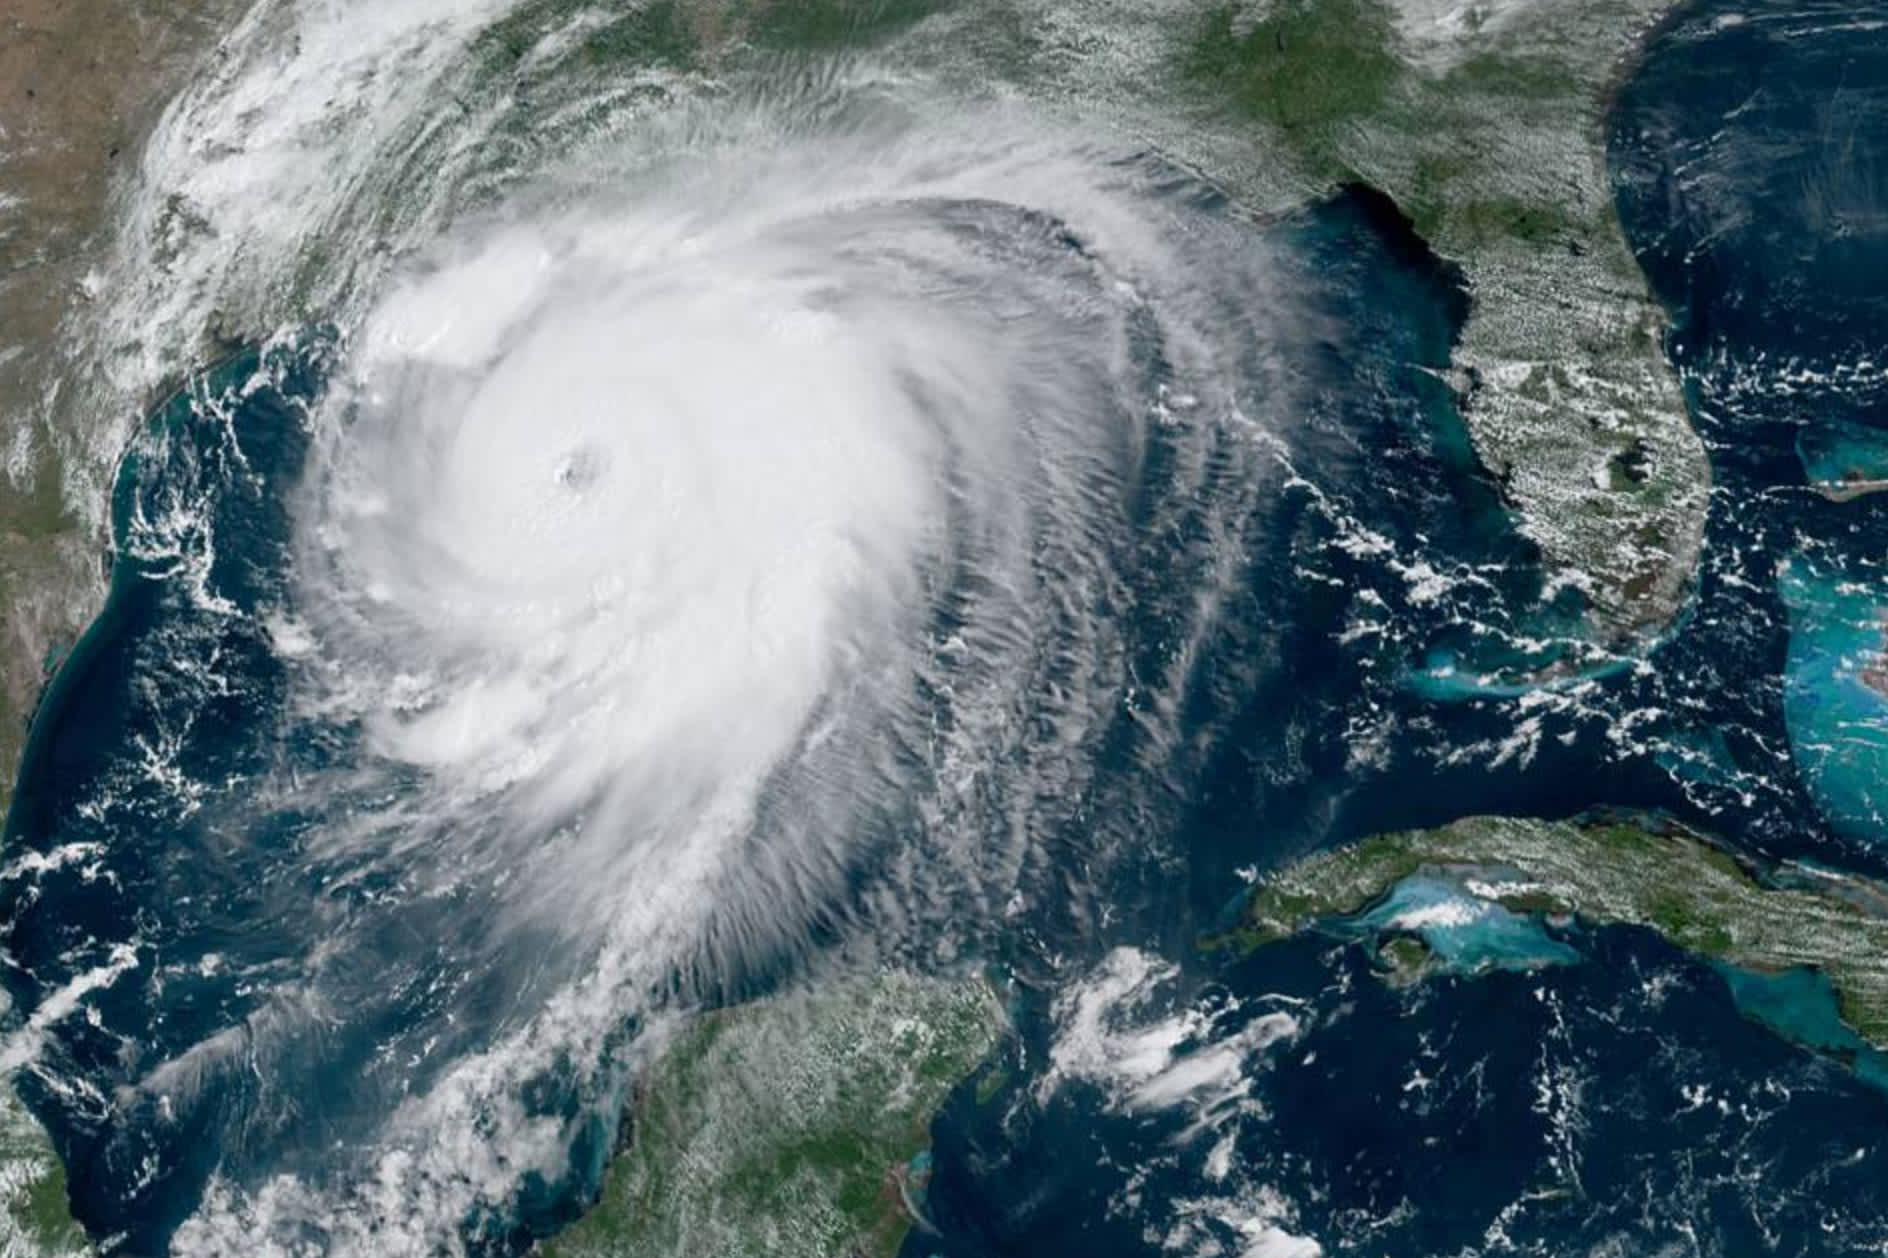 Laura upgraded to 'catastrophic' Category 4 hurricane 'unsurvivable' storm surge forecast for Texas-Louisiana – CNBC